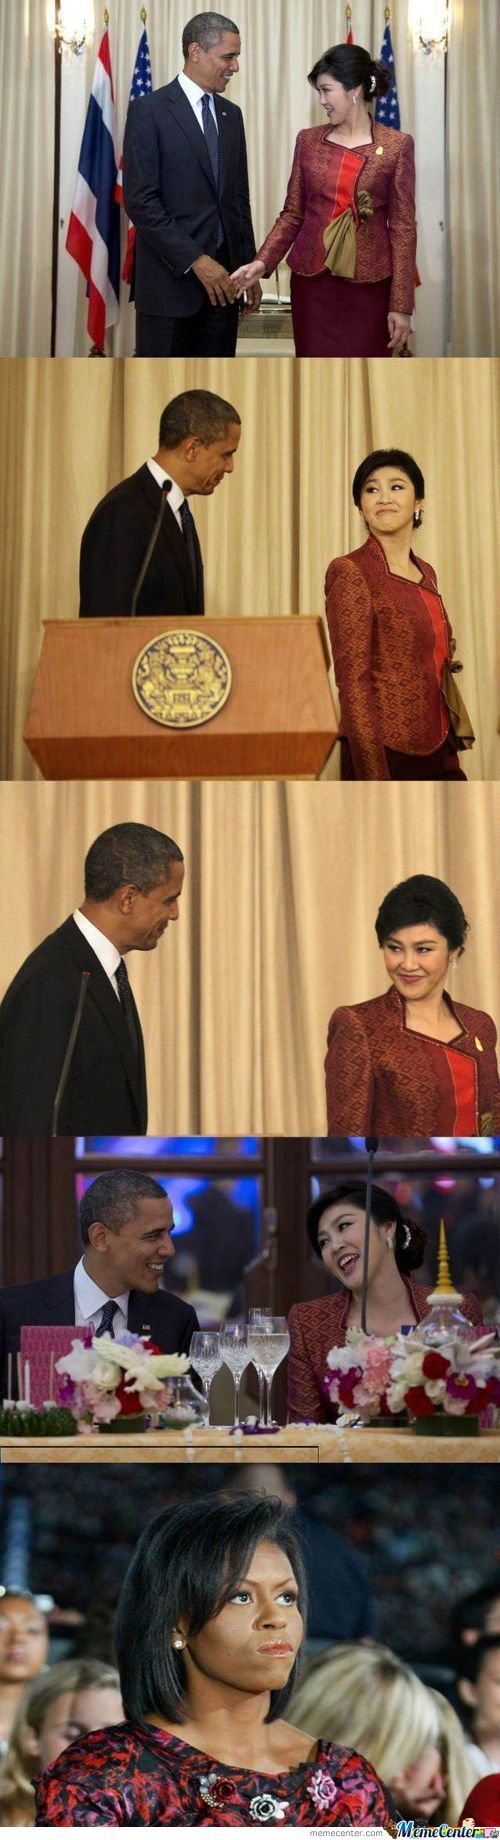 President Obama And Prime Minister Of Thailand